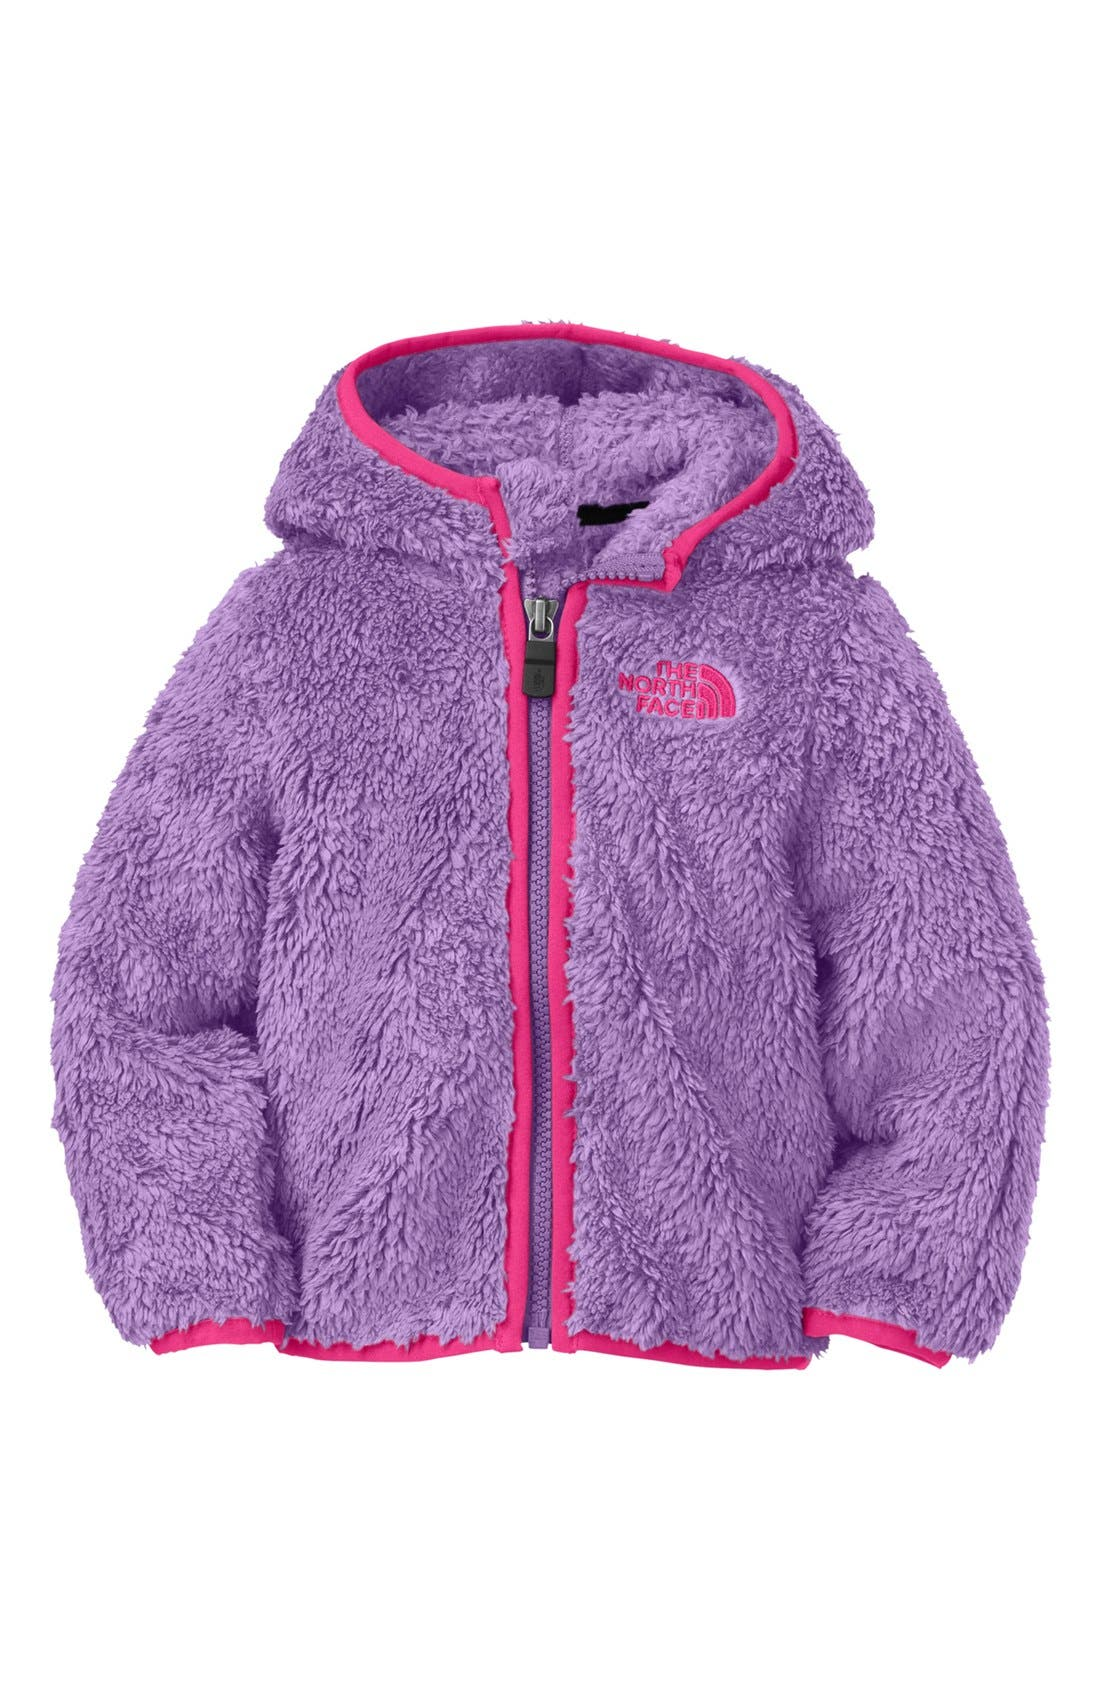 Alternate Image 1 Selected - The North Face 'Plushee' Fleece Jacket (Baby Girls)